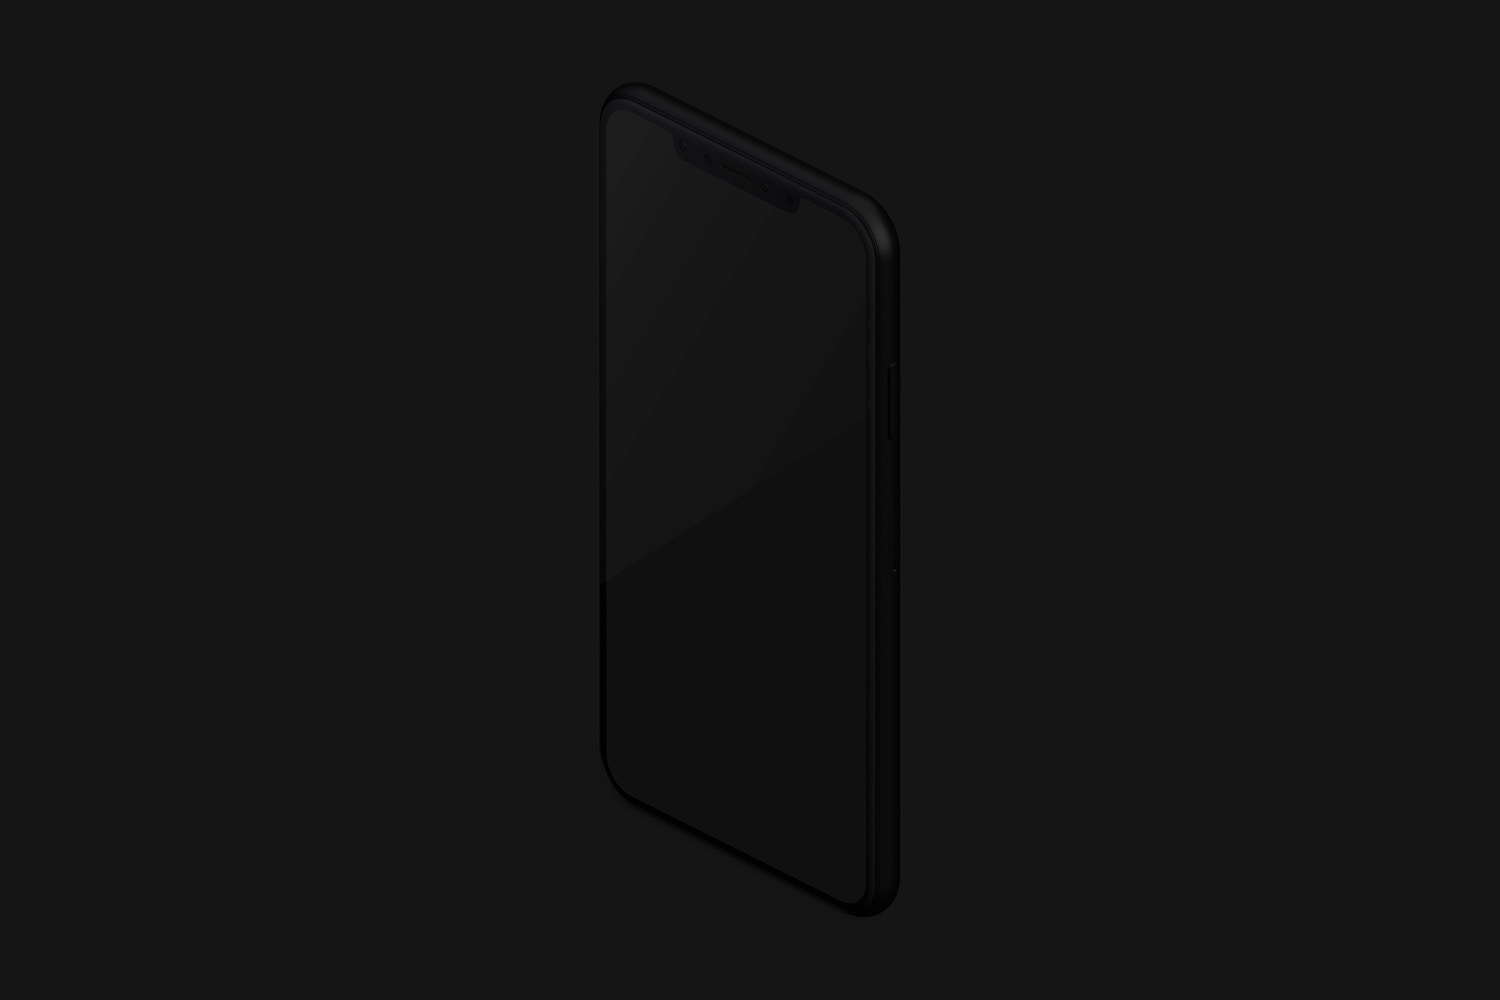 Isometric Clay iPhone XS Max Mockup, Left View 02 (3) by Original Mockups on Original Mockups